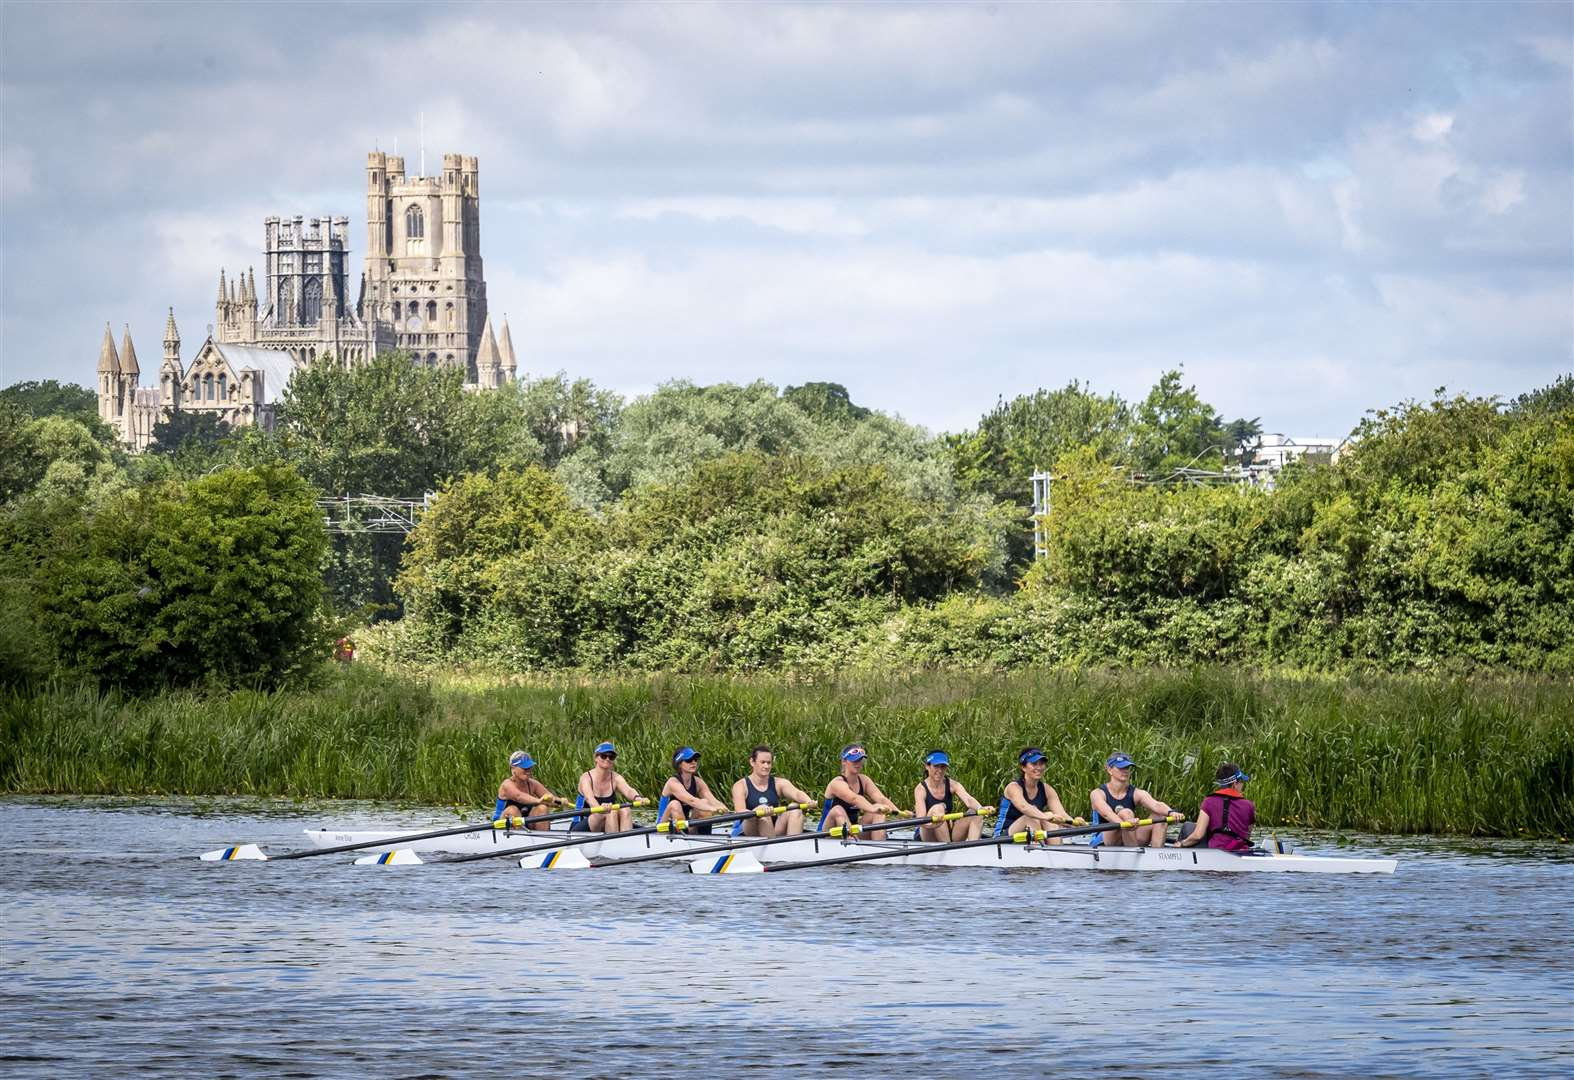 Chesterton Rowing Club women's squad boosted by new boat for Town Bumps